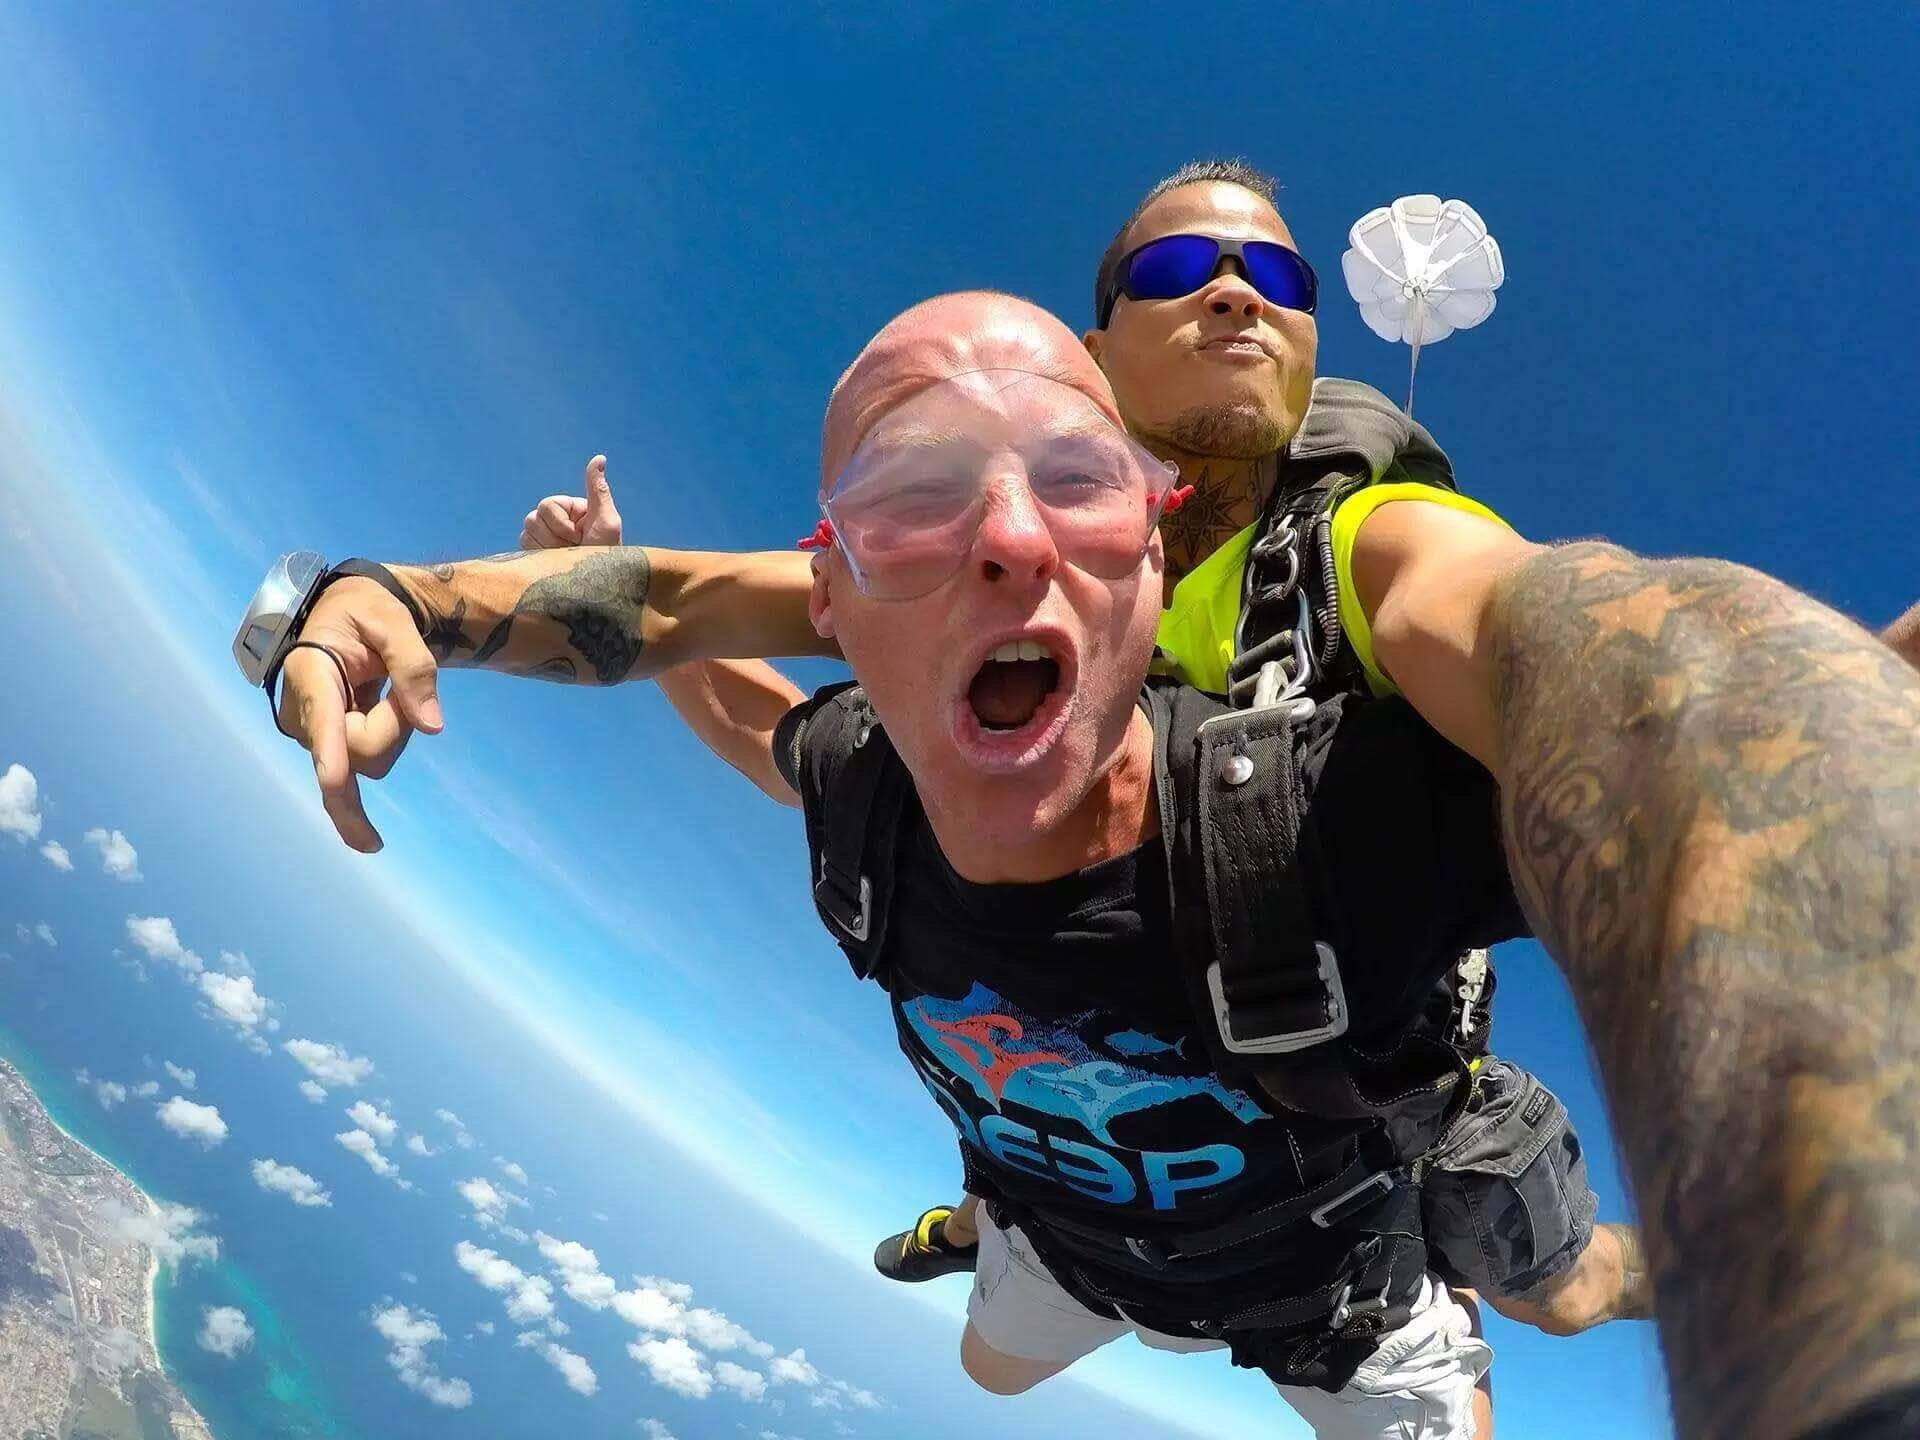 Skydive Aruba in Caribbean: Jump Into Paradise with More Than 100+ Bookings Every Month